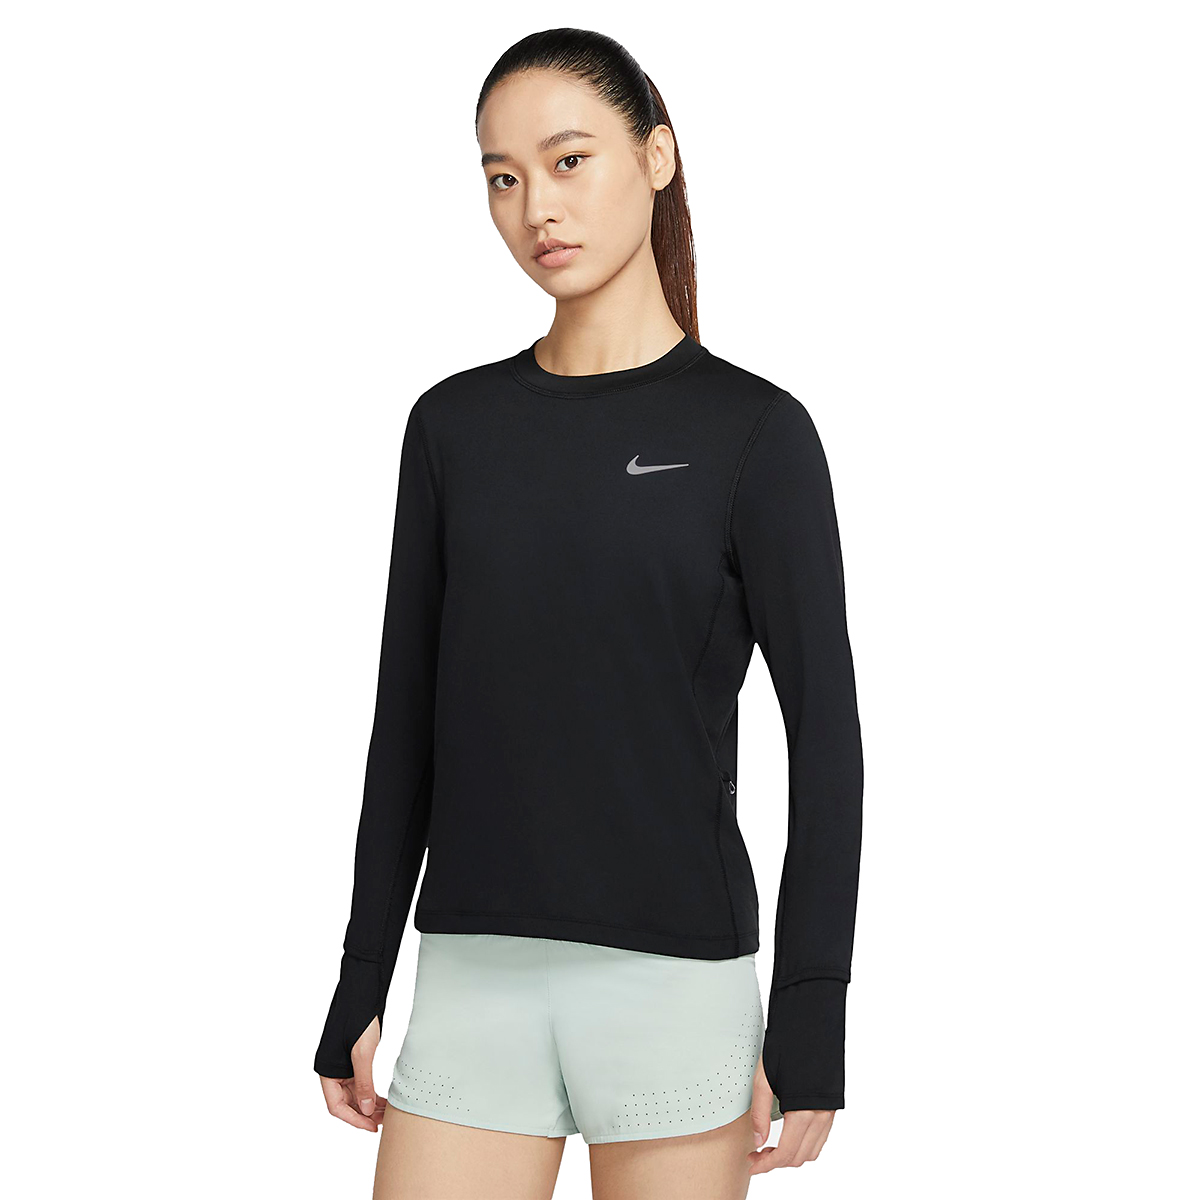 Women's Nike Element Crew Long Sleeve - Color: Black/Reflective Silver - Size: XS, Black/Reflective Silver, large, image 1